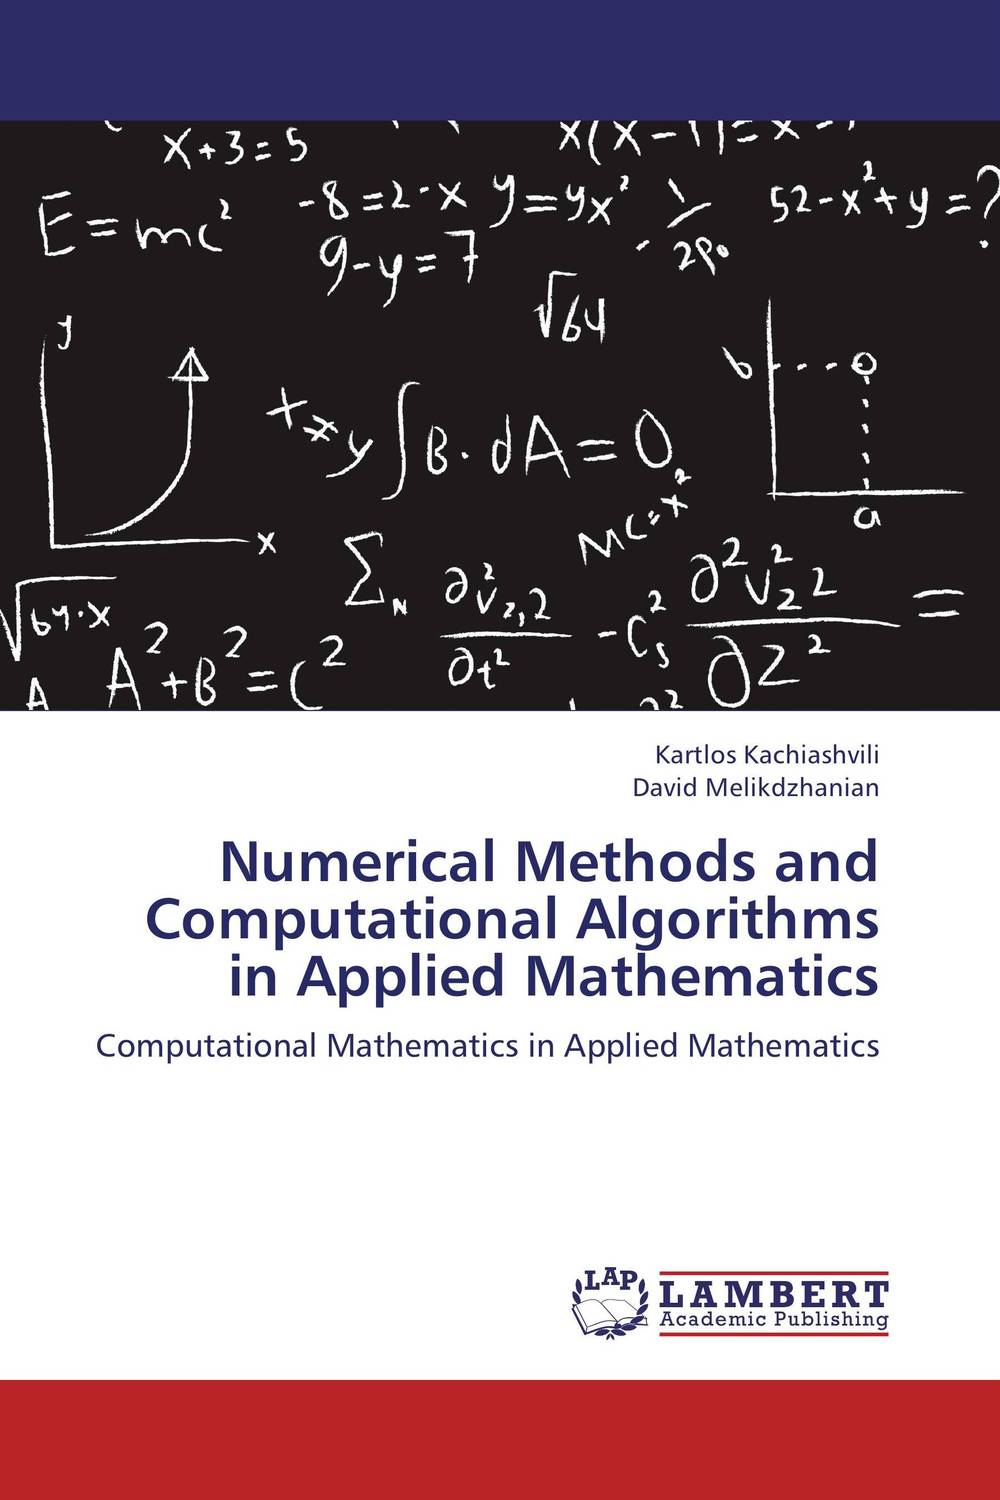 Numerical Methods and Computational Algorithms in Applied Mathematics rakesh kumar amrit pal singh and sangeeta obrai computational and solution studies of cu ii ions with podands